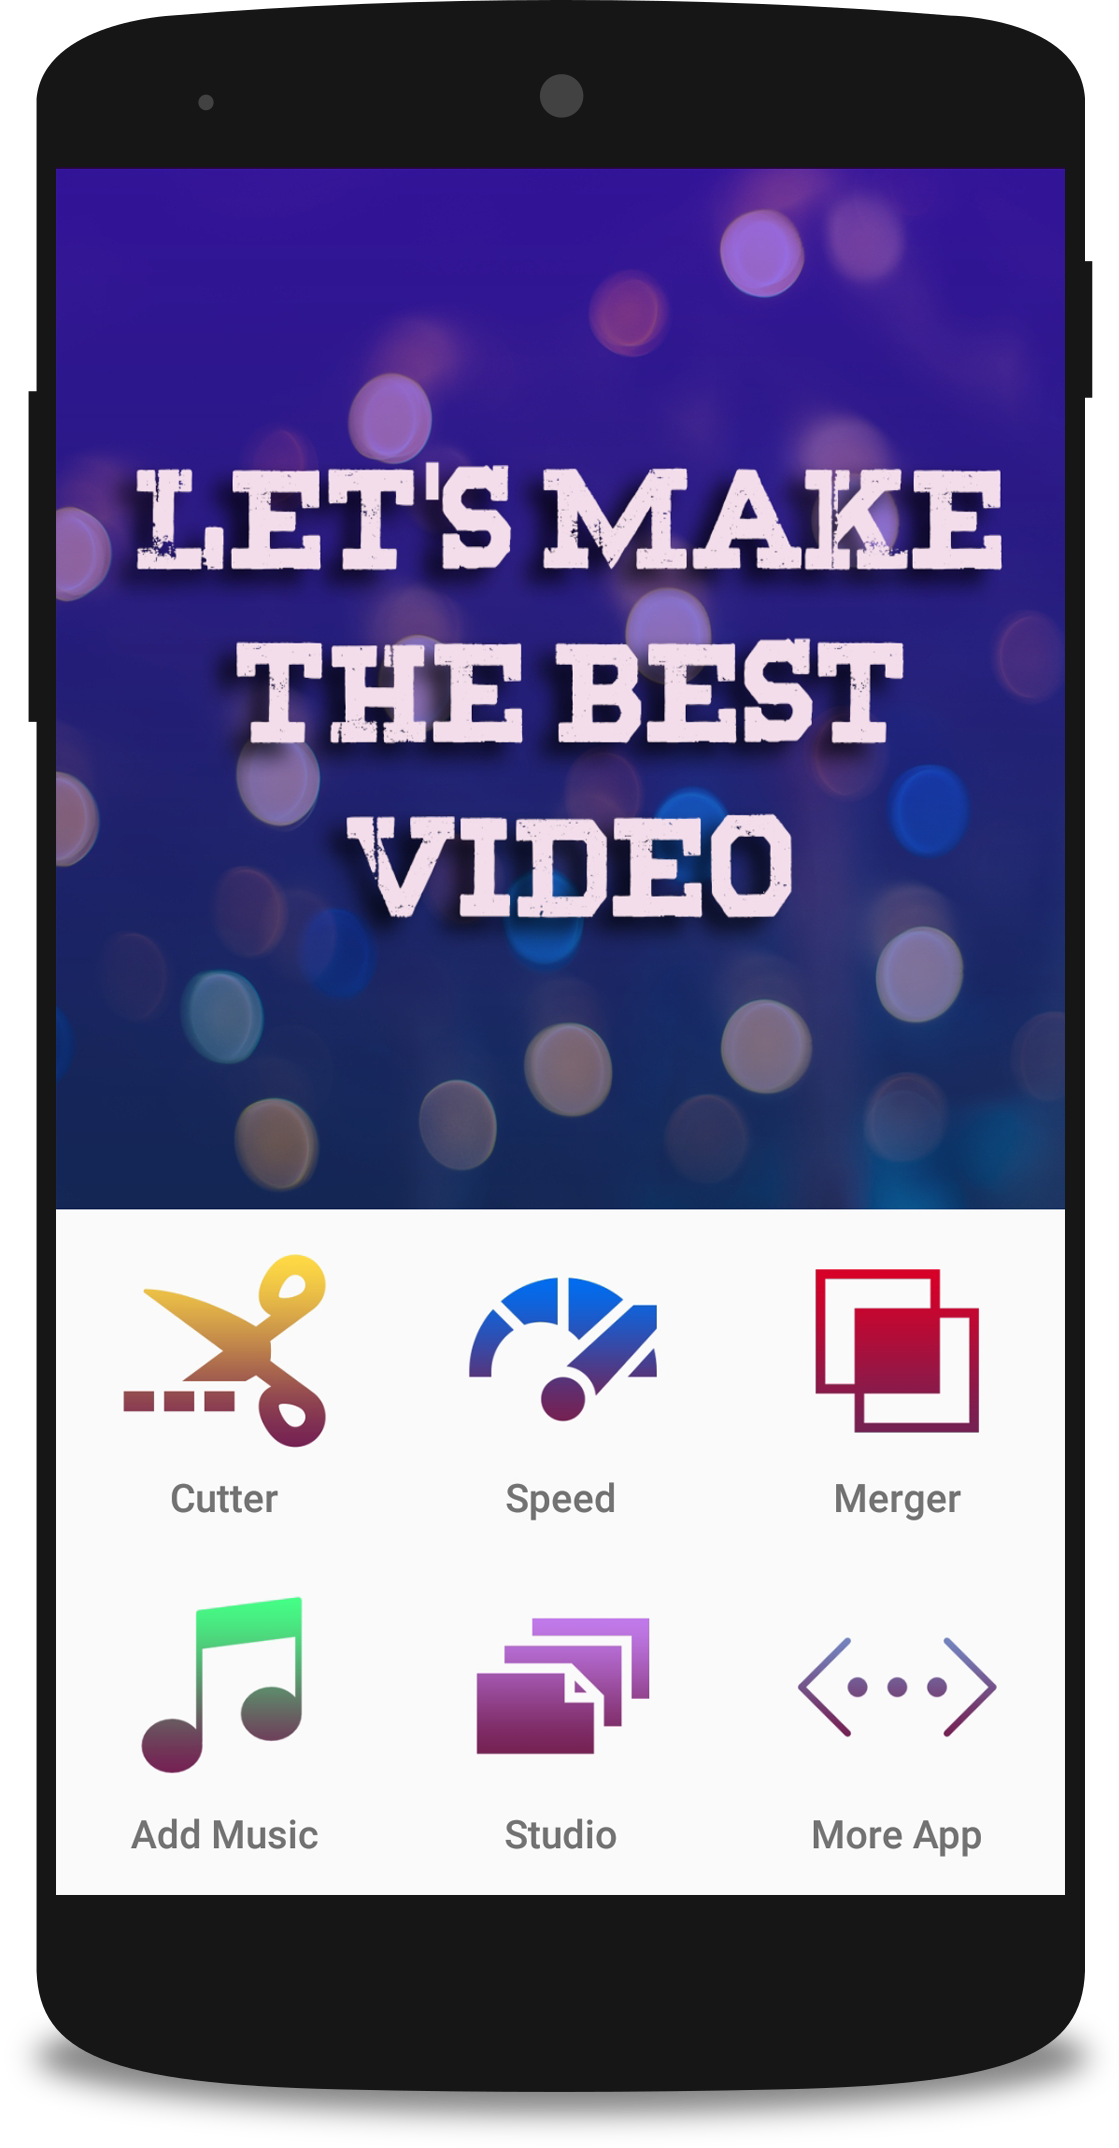 Video montage app helps you to edit videos, cut videos, add music to video or merge to videos into one